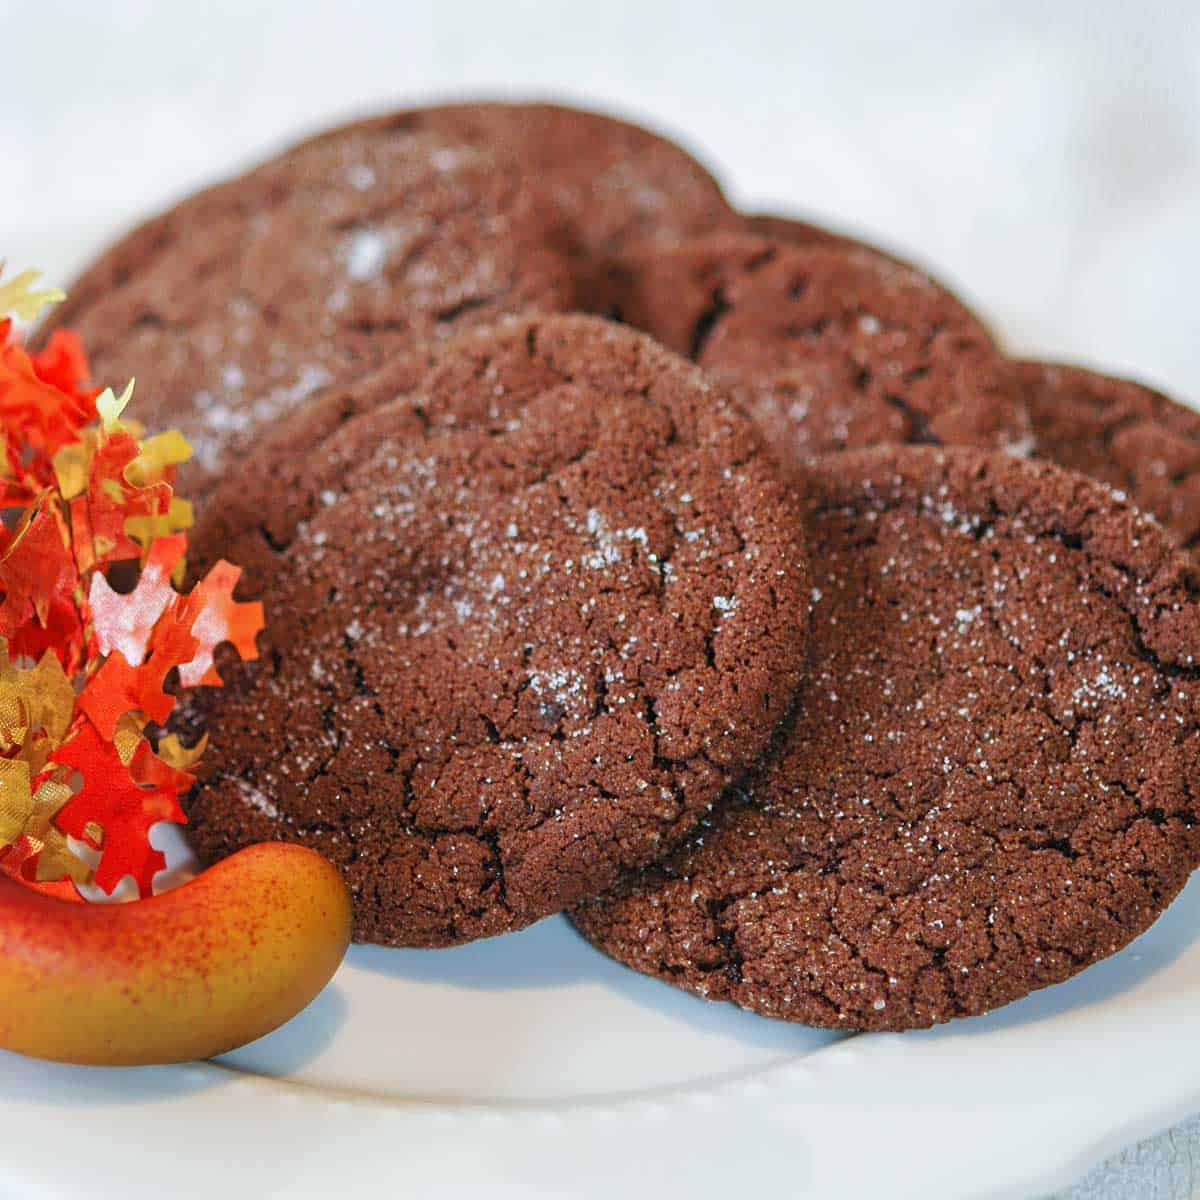 Chocolate sugar cookies on a white plate.